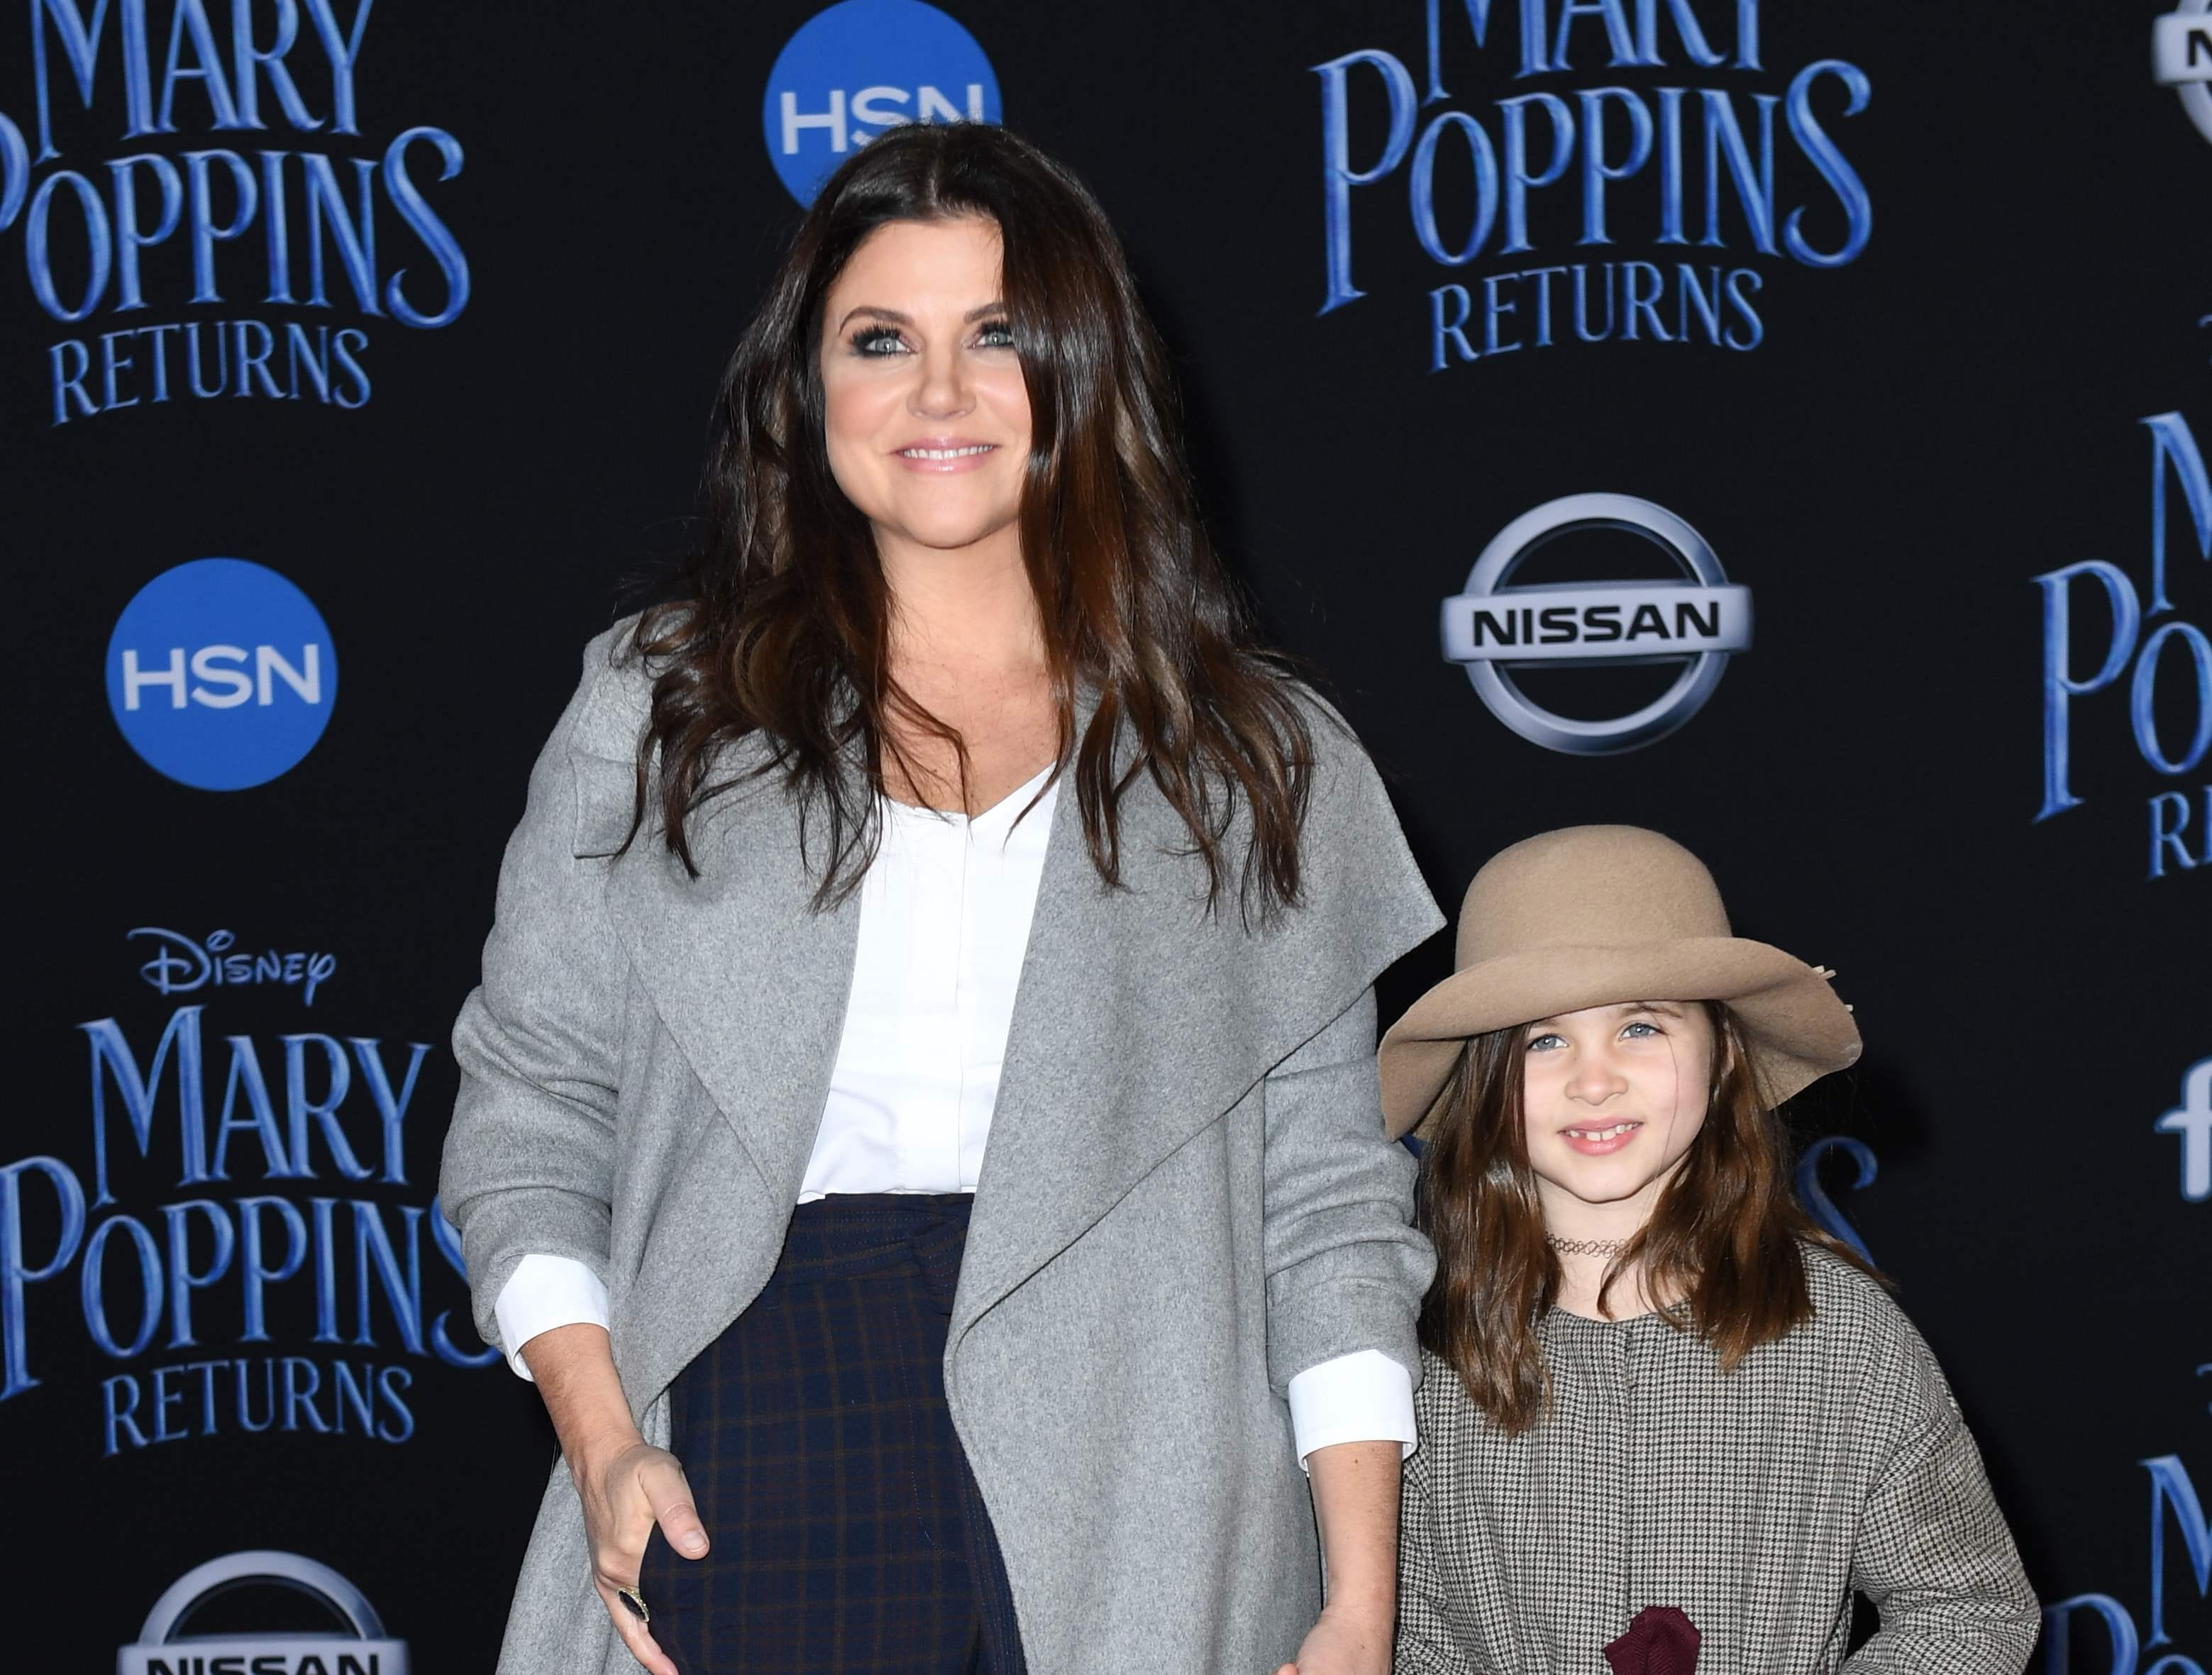 """US actress Tiffani Thiessen and her daughter Harper Renn Smith arrive for the world premiere of Disney's """"Mary Poppins Returns"""" at the Dolby theatre in Hollywood on November 29, 2018. (Photo by VALERIE MACON / AFP)VALERIE MACON/AFP/Getty Images ORG XMIT: 'Mary Pop ORIG FILE ID: AFP_1B816E"""